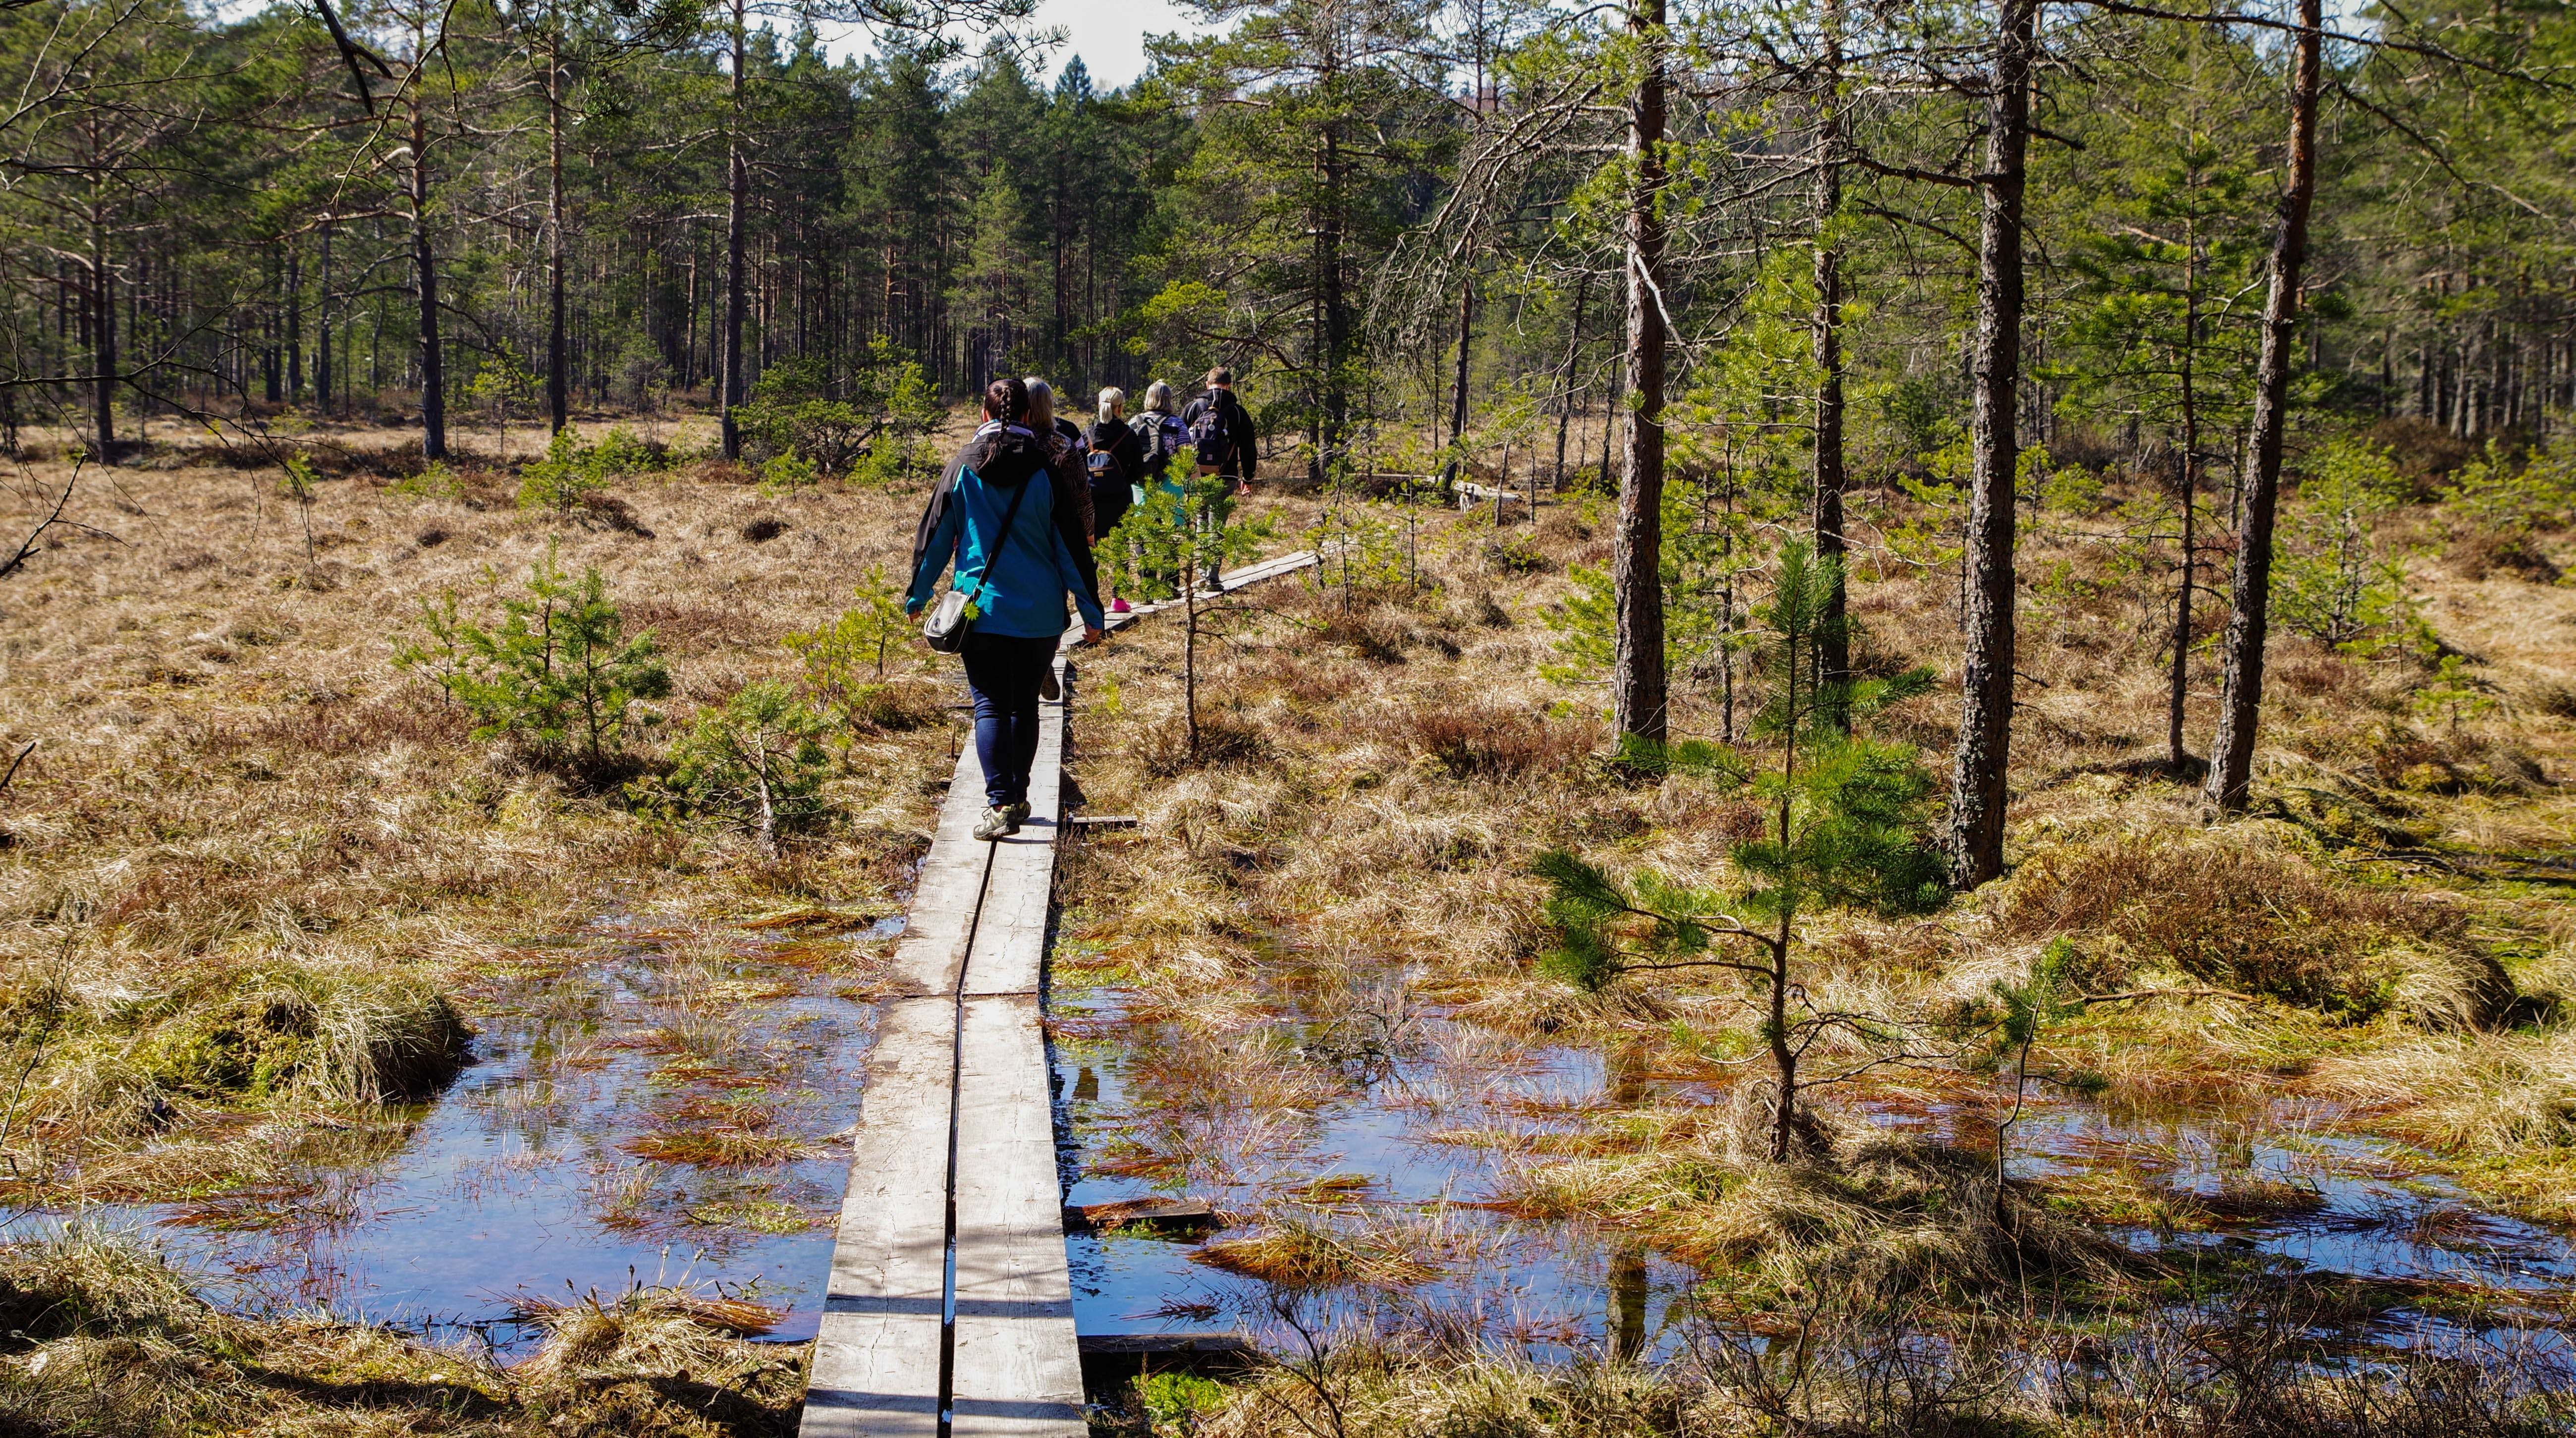 People Walking in Brown Wooden Planks in Forest